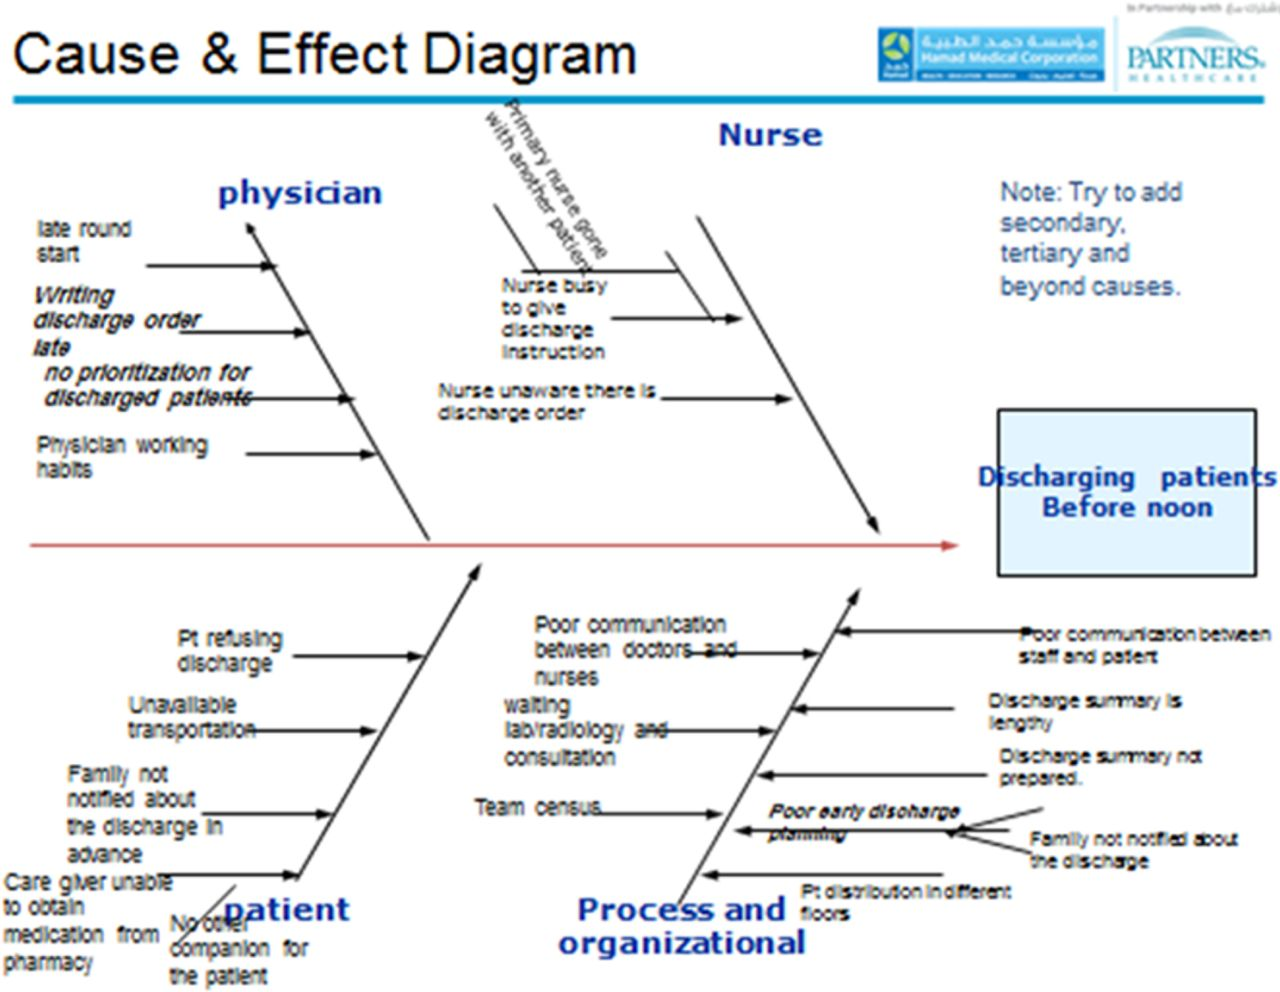 Understanding and overing barriers to timely discharge